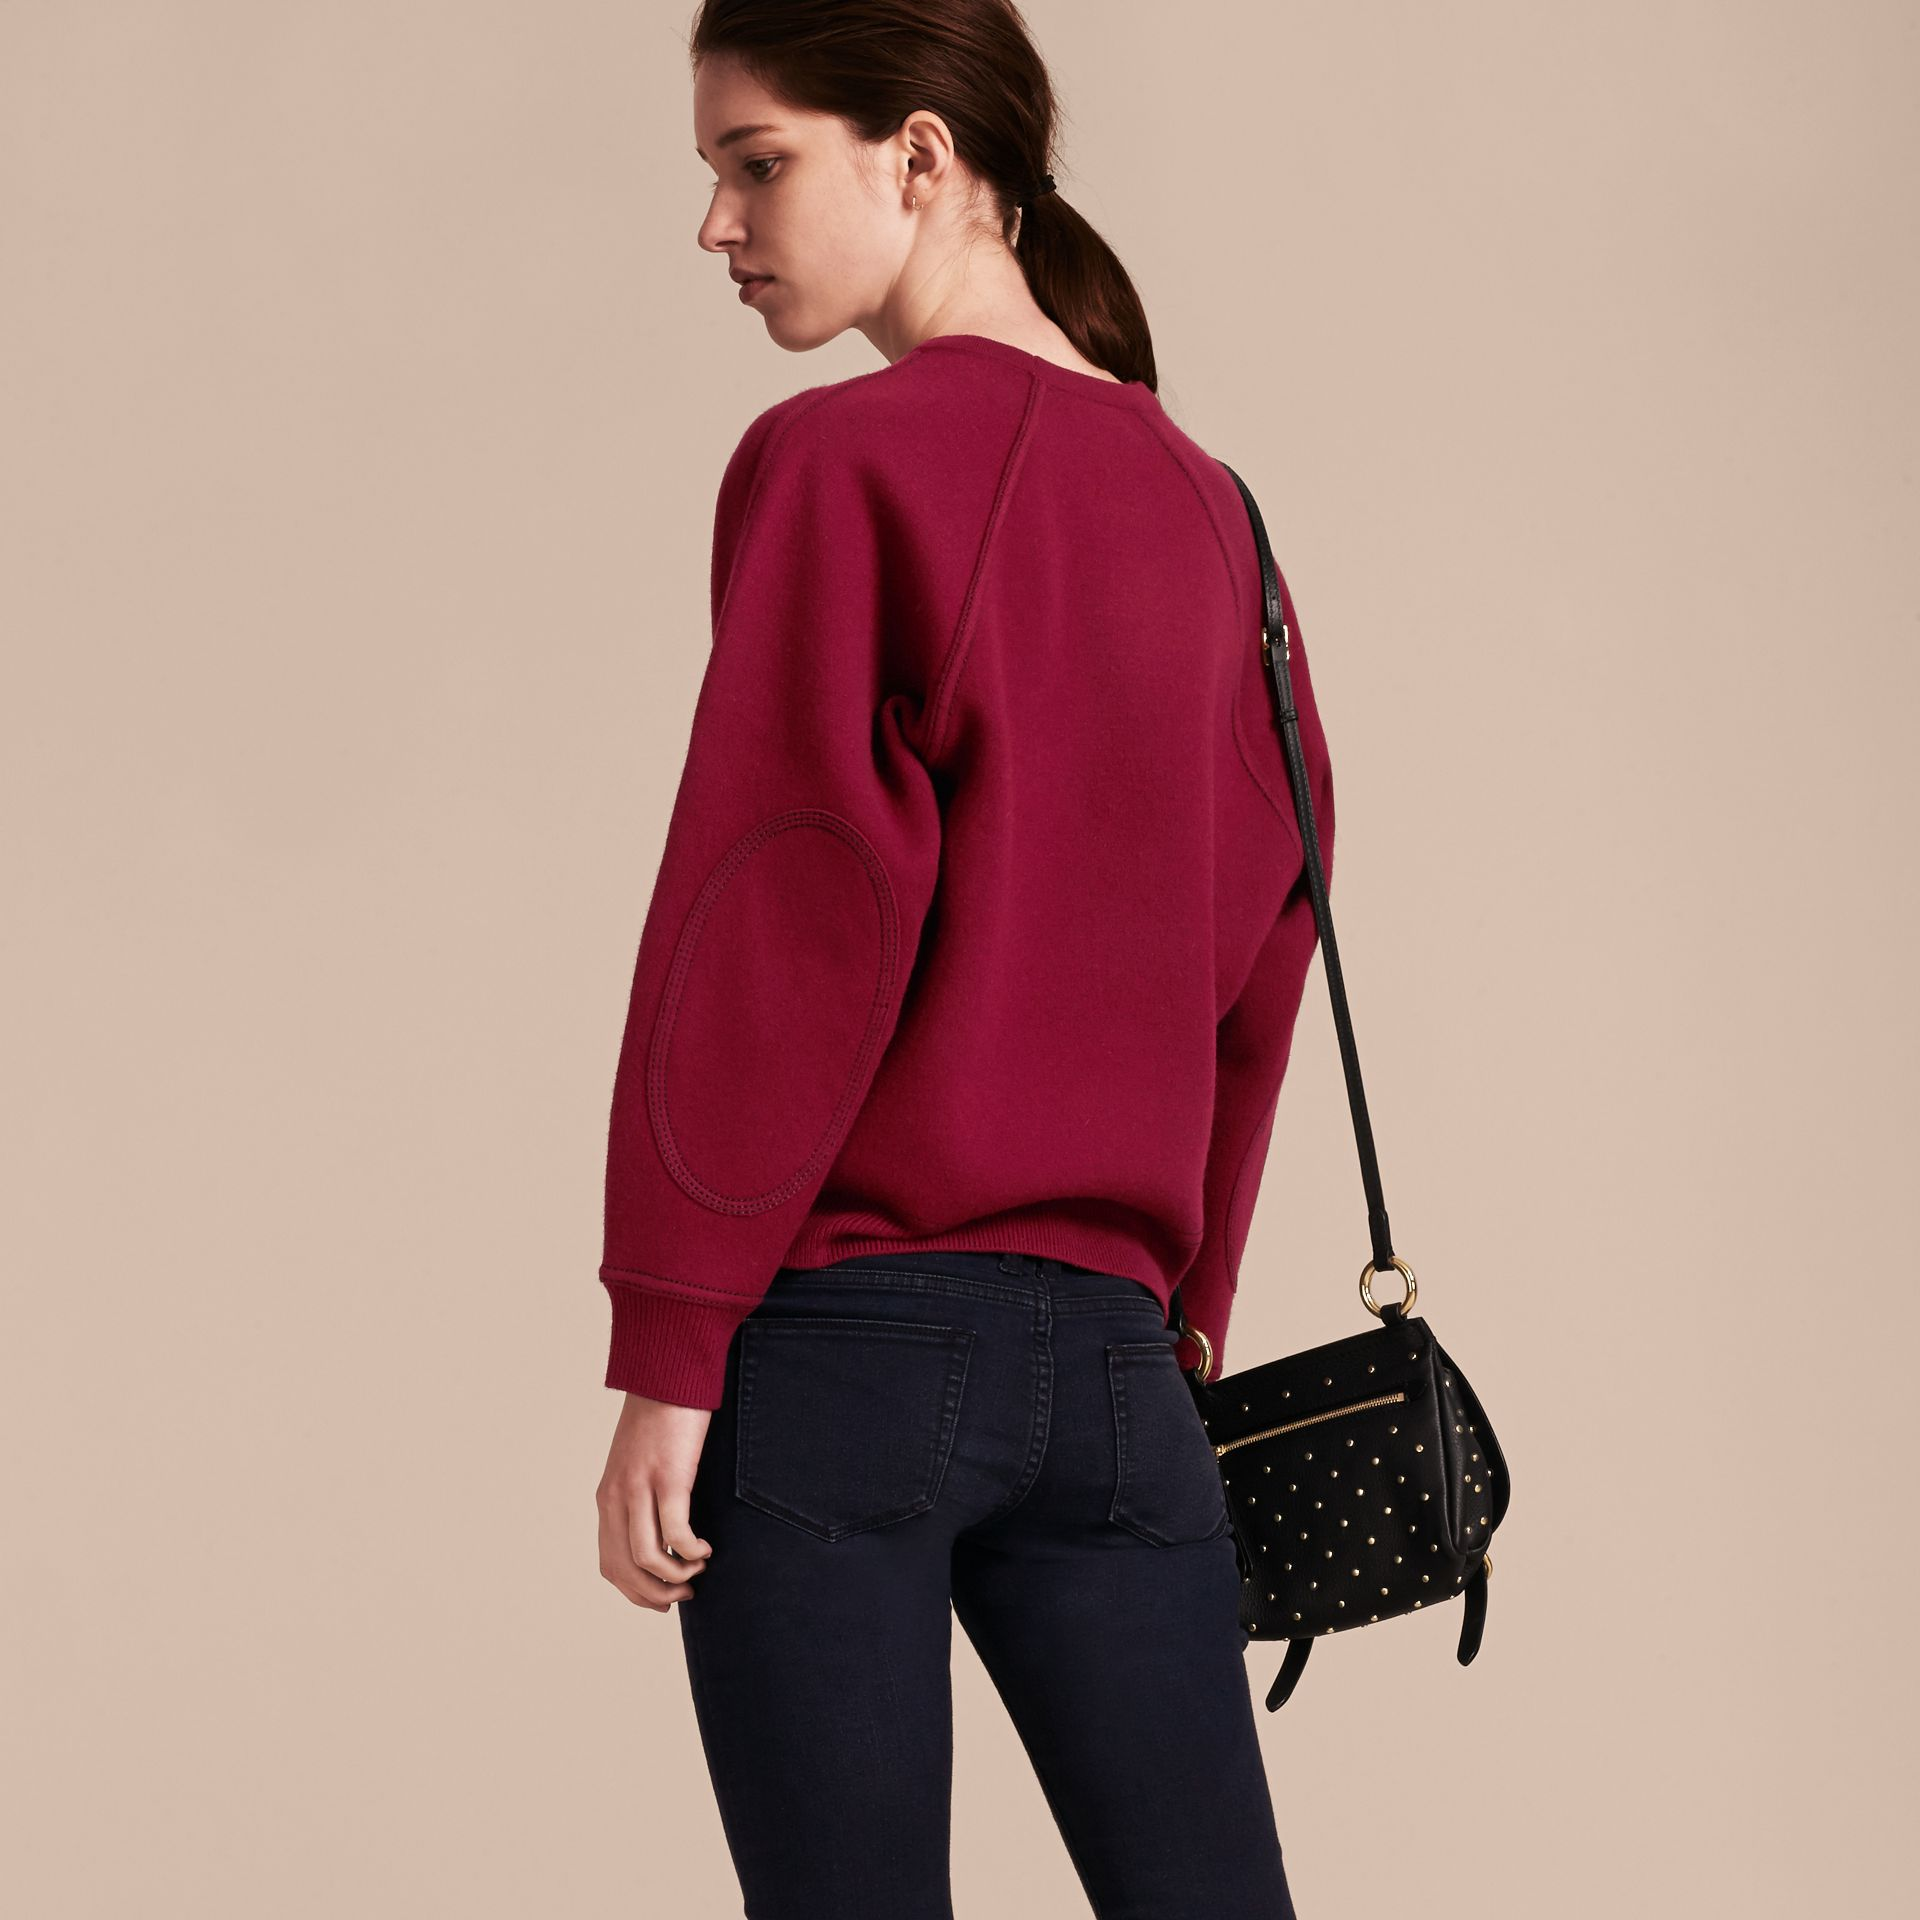 Topstitch Detail Wool Cashmere Blend Sweatshirt Burgundy - gallery image 3